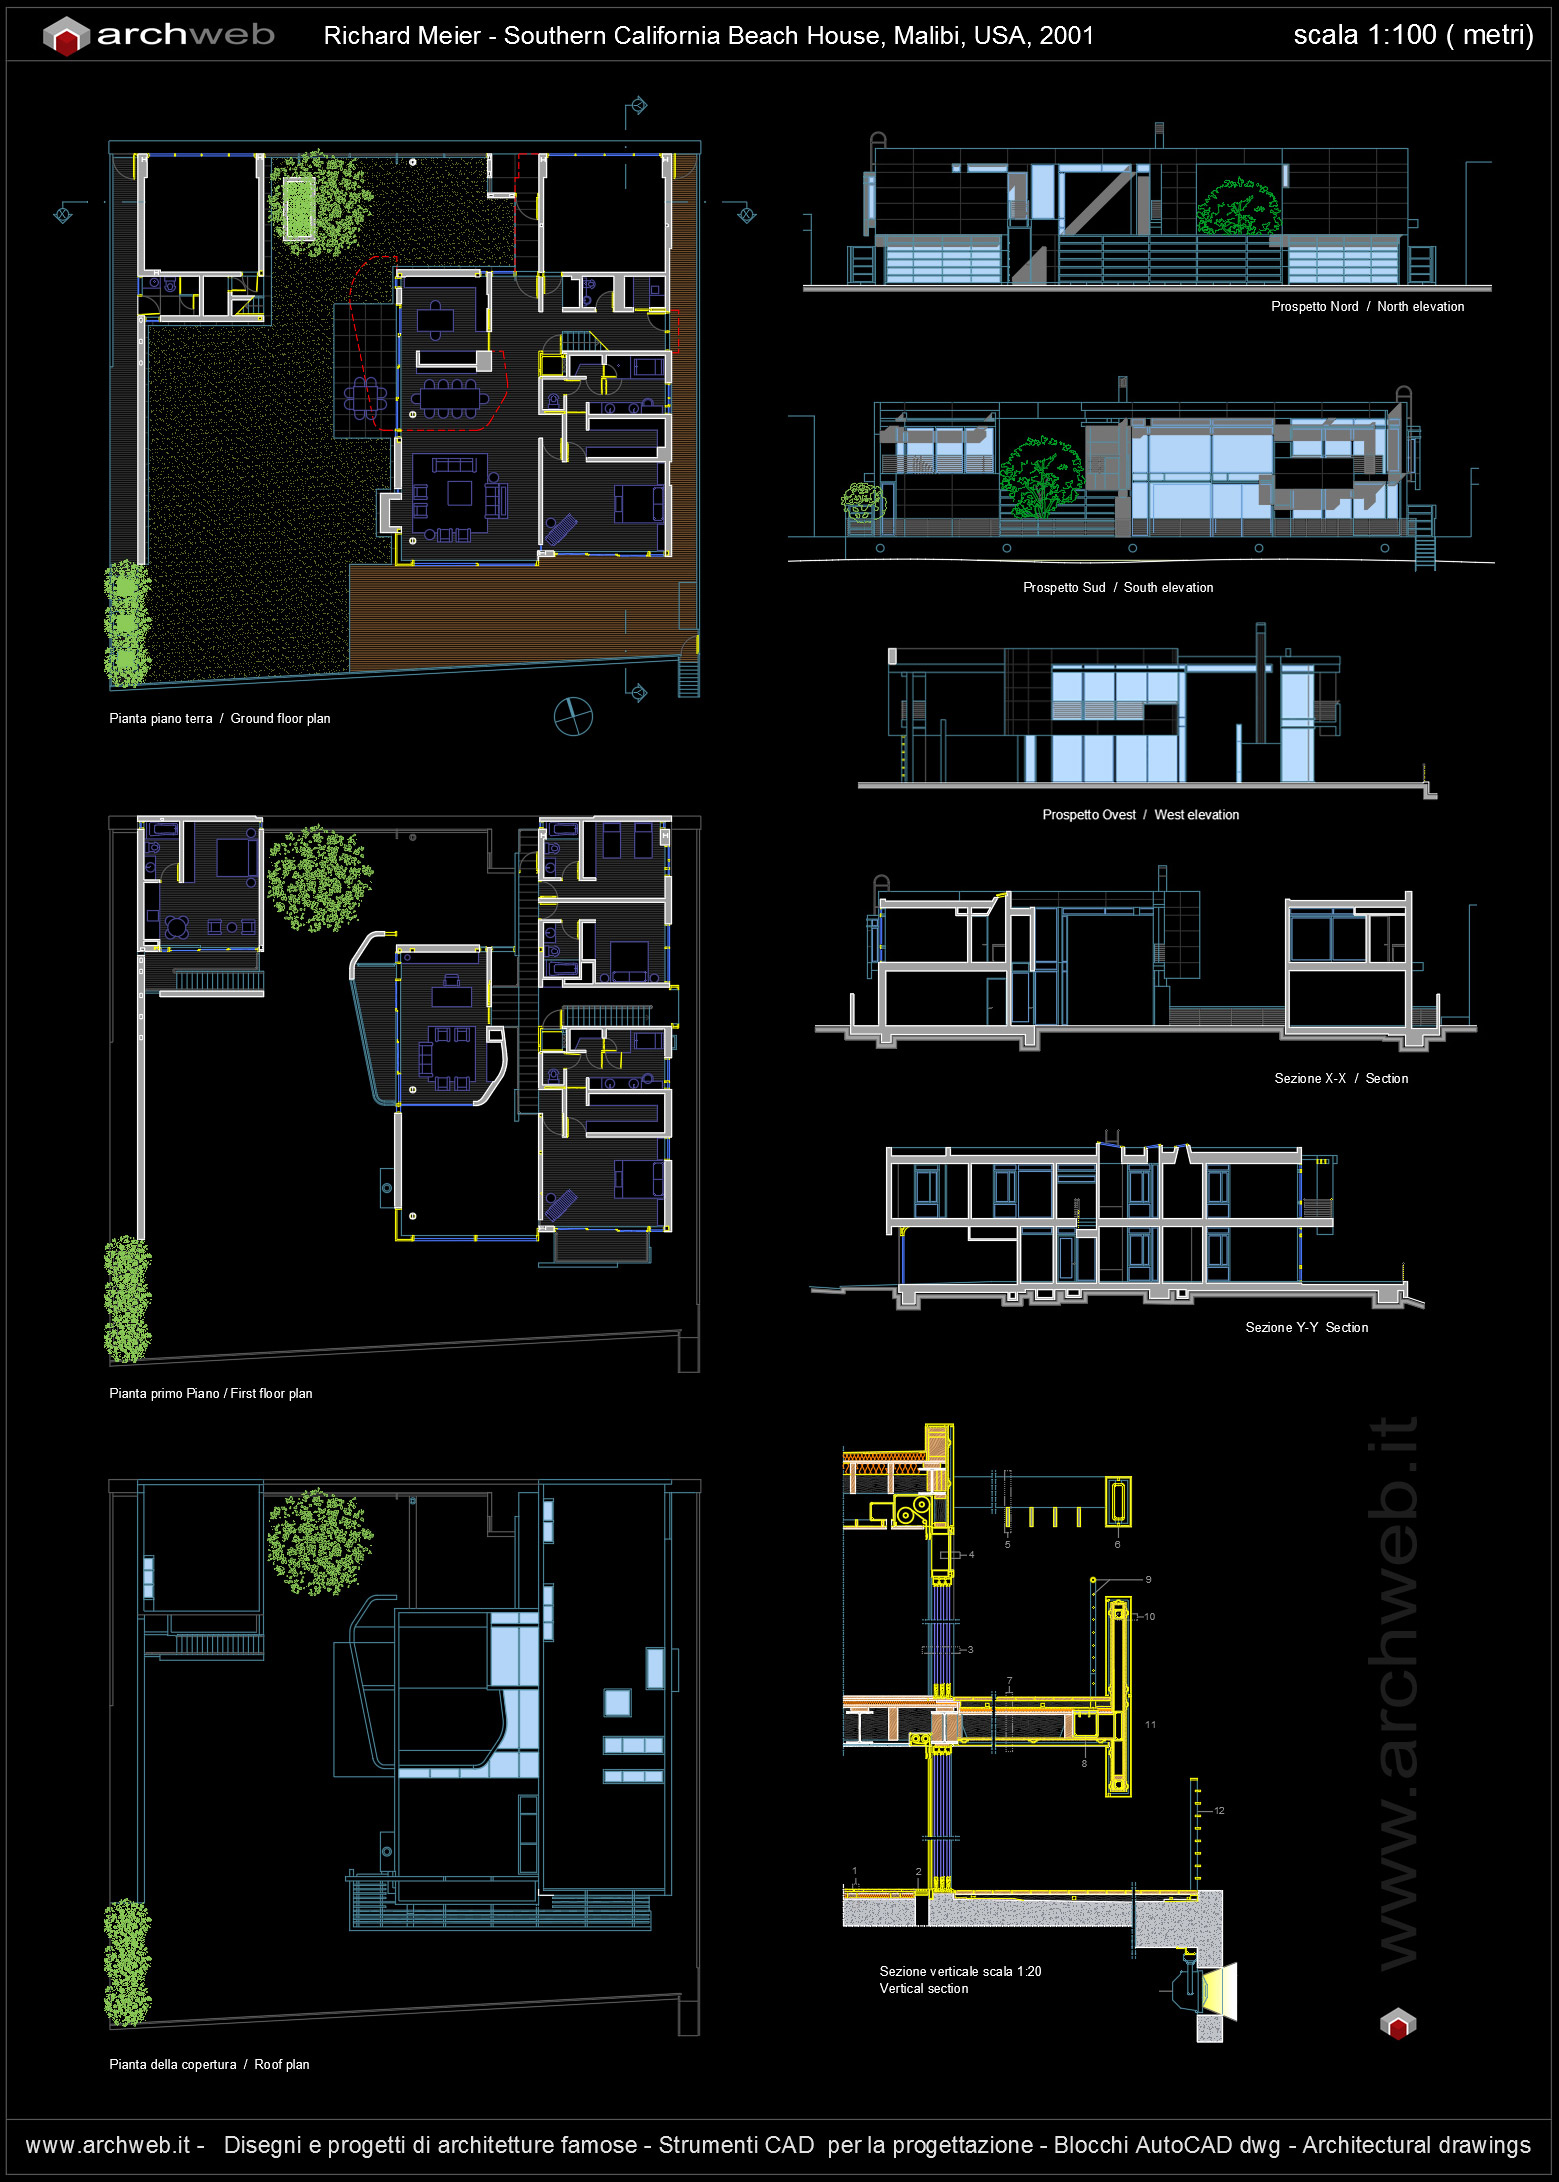 southern california beach house autocad dwg